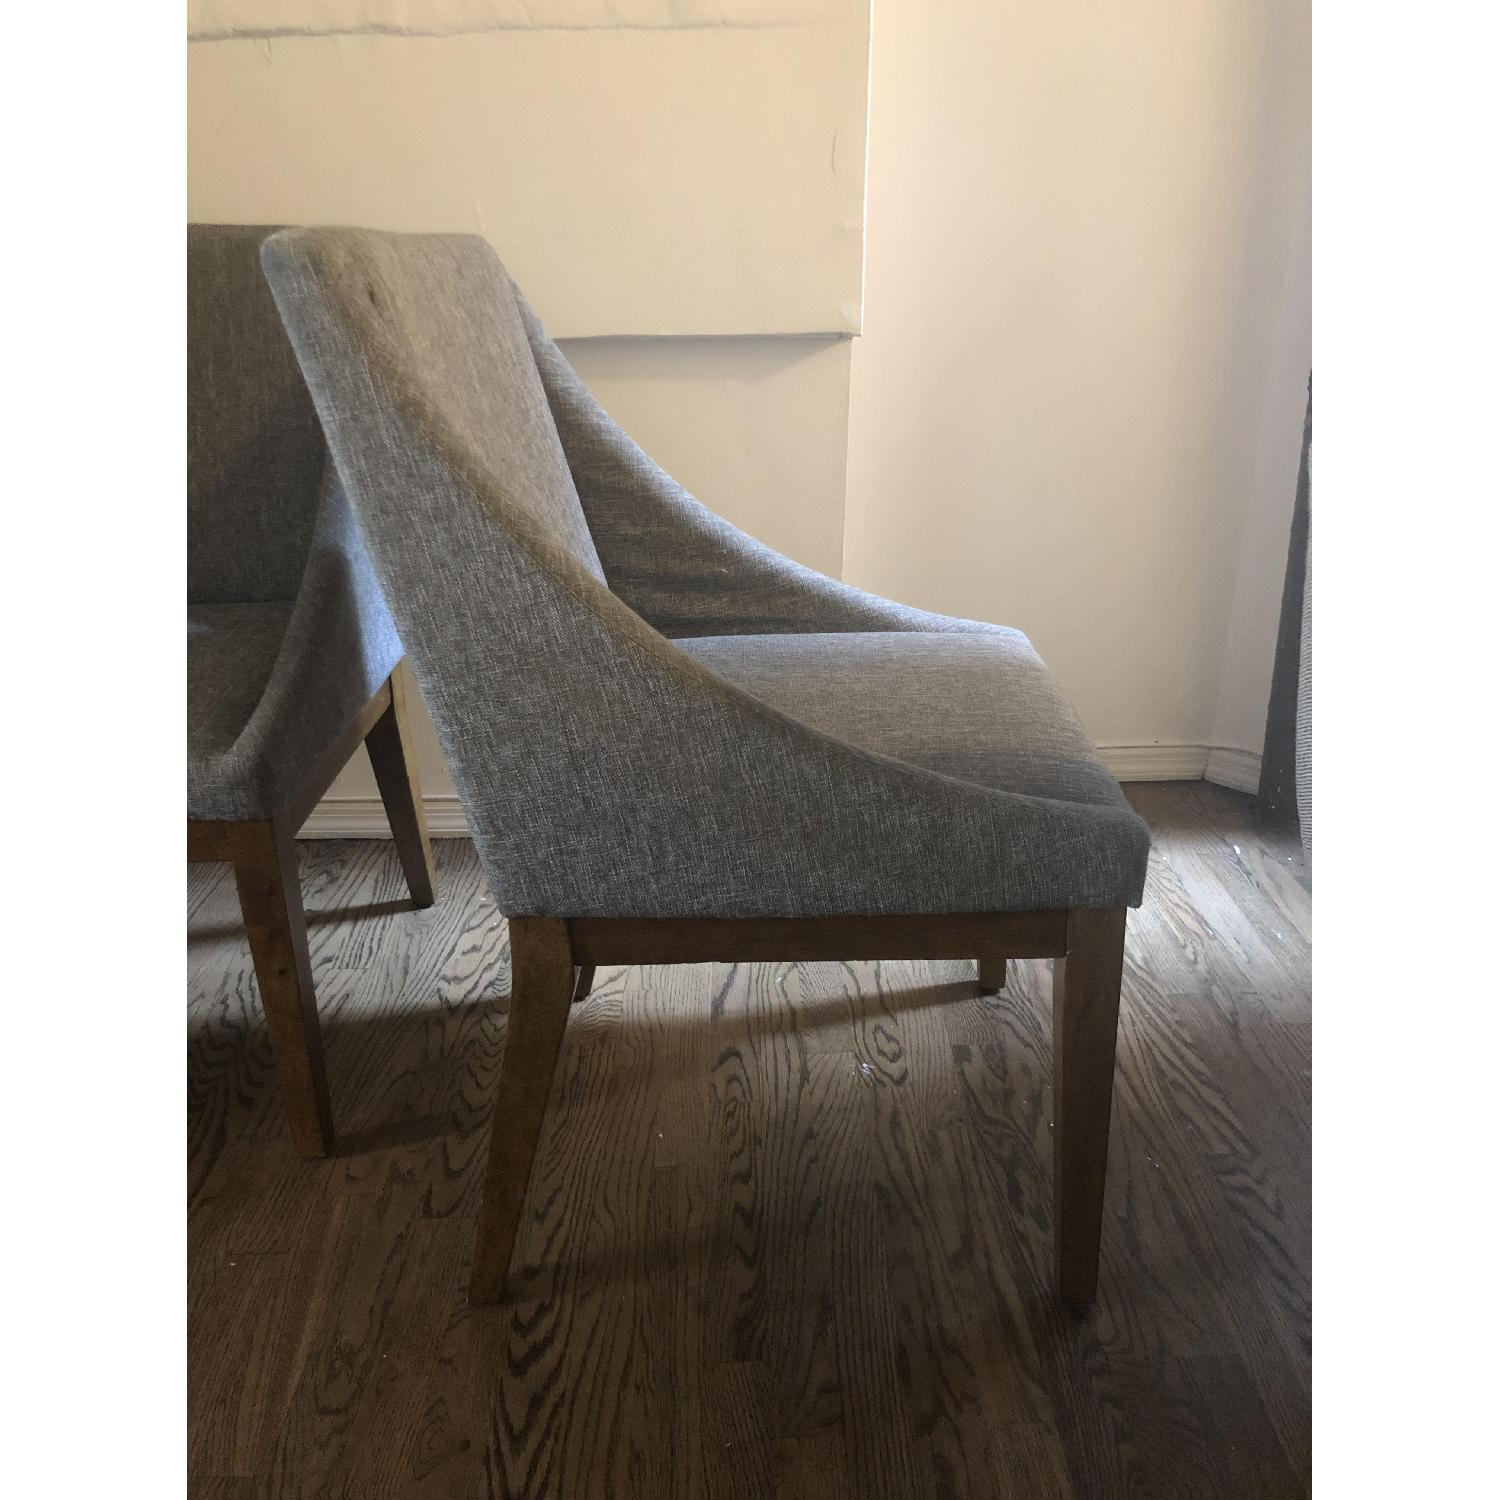 West Elm Curved Upholstered Chairs - image-2